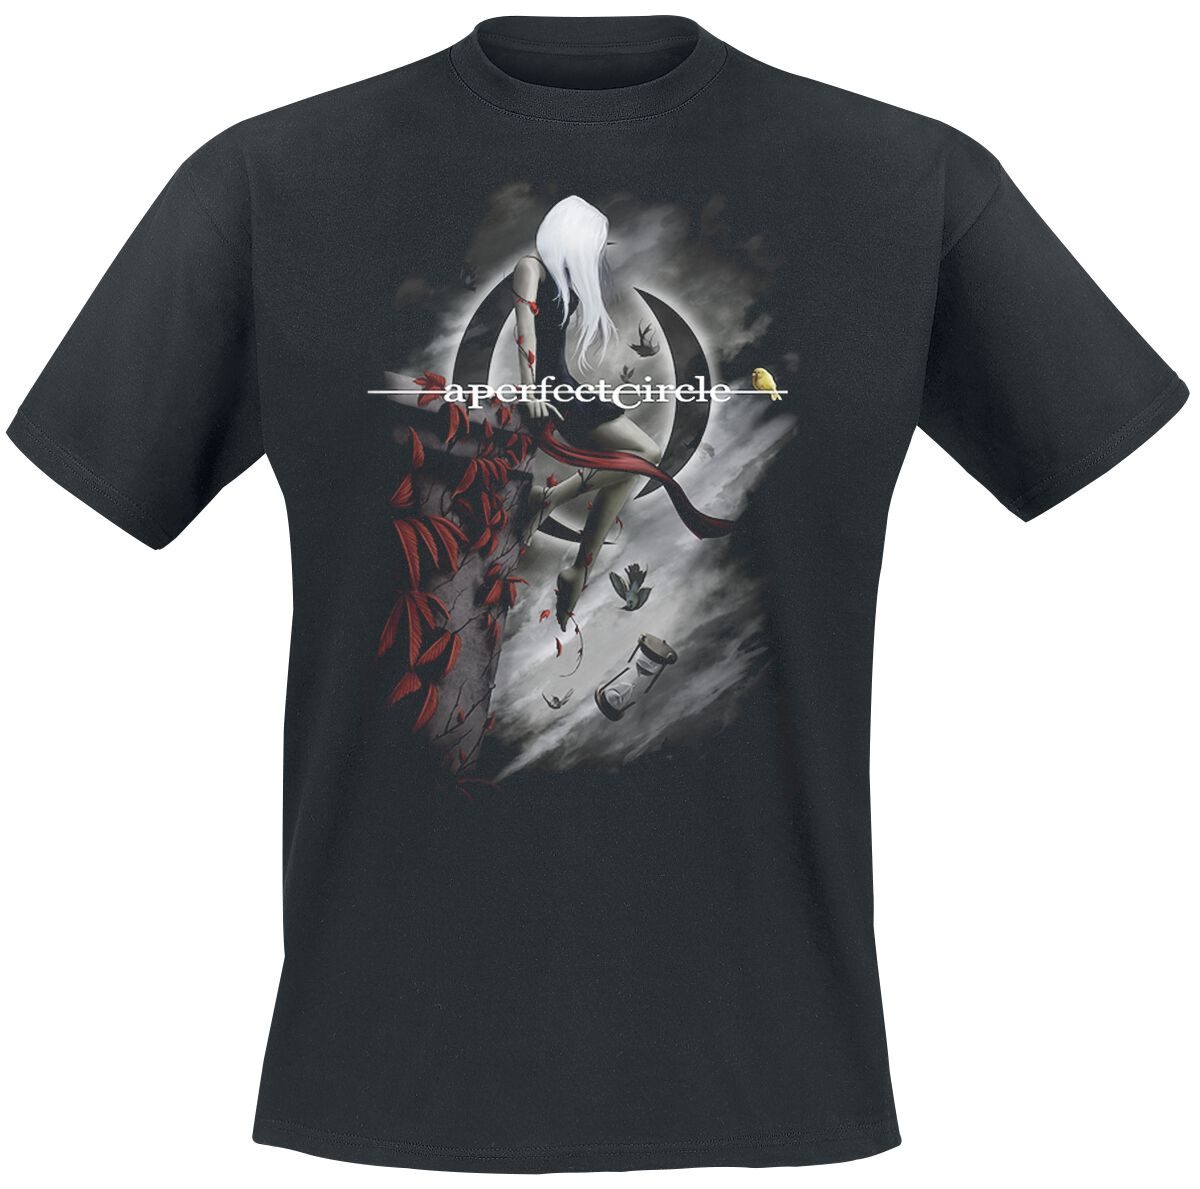 Image of A Perfect Circle Hourglass T-Shirt schwarz